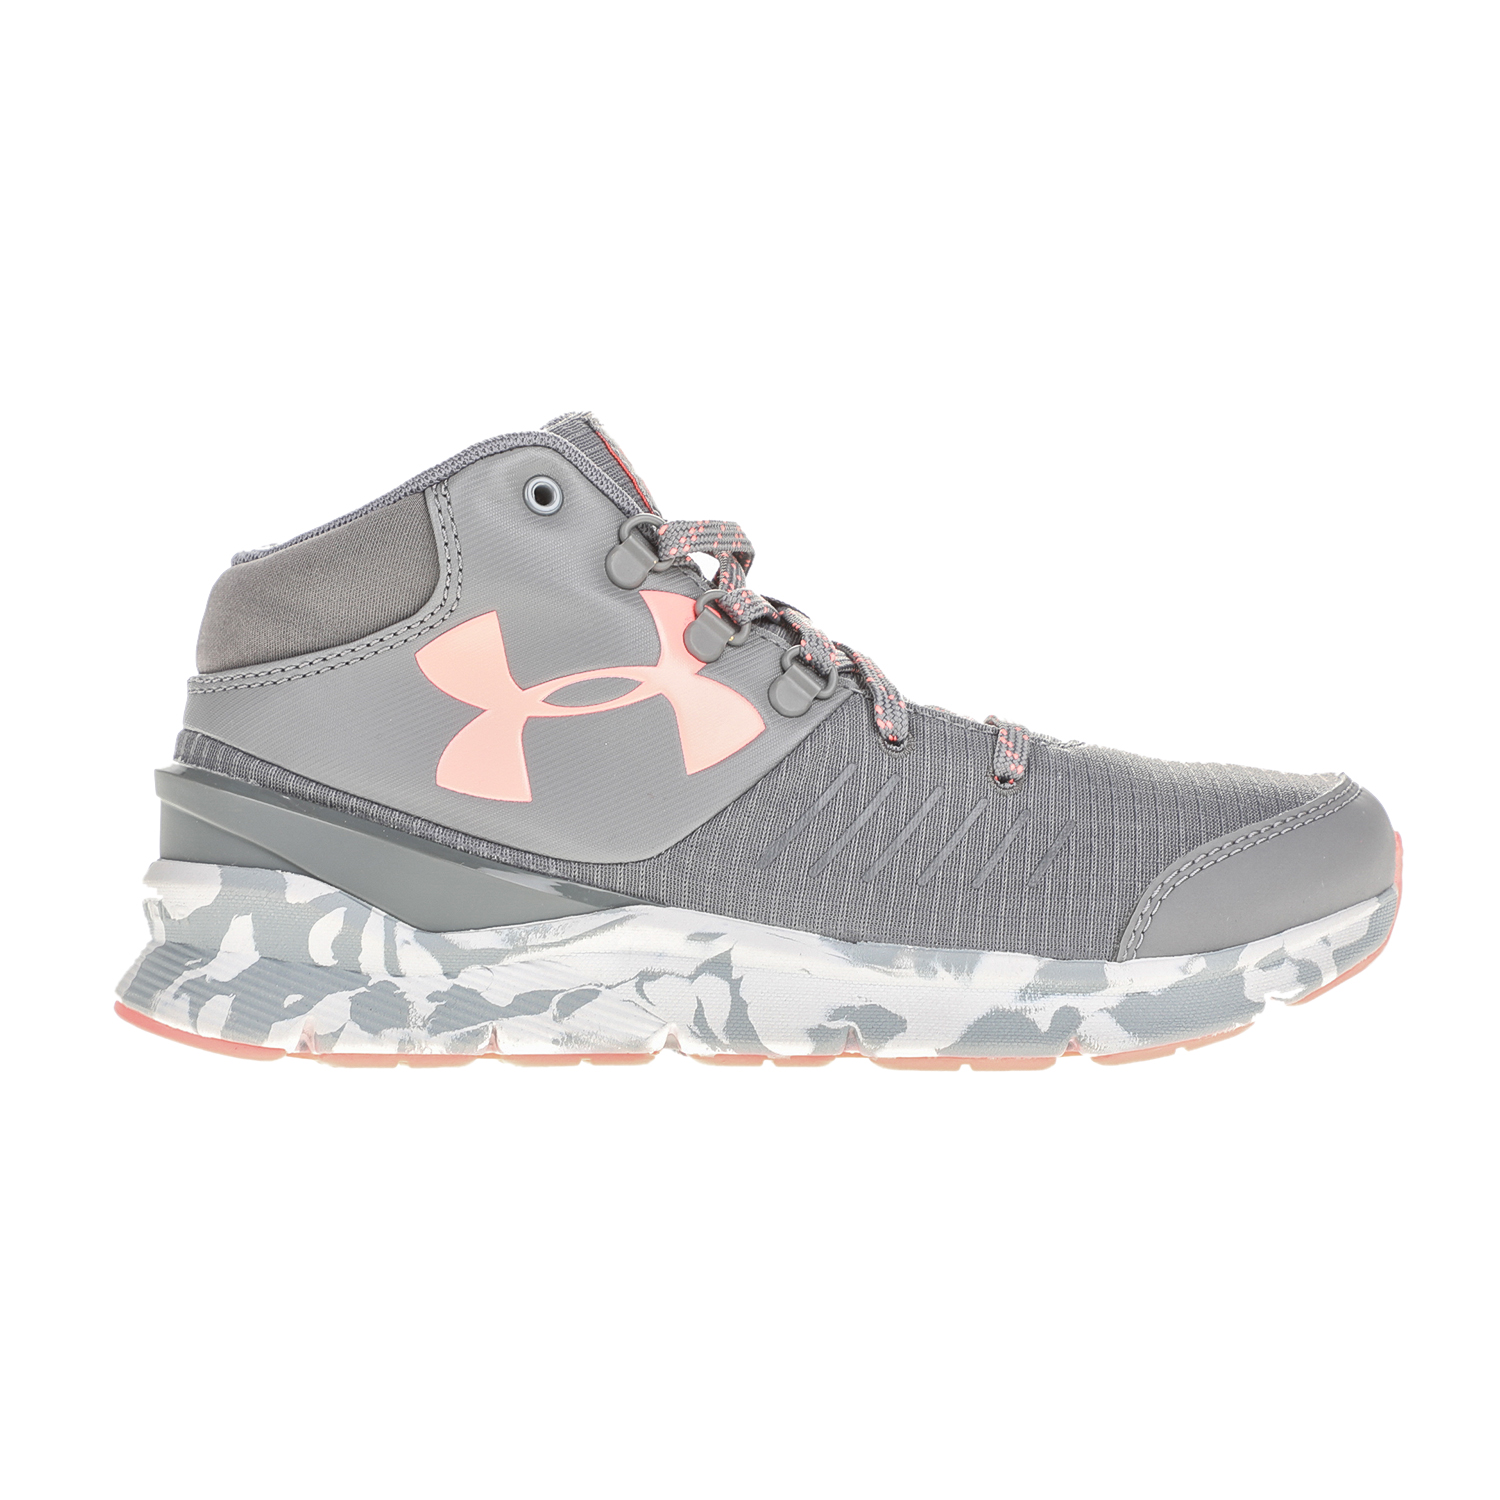 UNDER ARMOUR – Κοριτσίστικα αθλητικά παπούτσια UNDER ARMOUR GGS OVERDRIVE MID MARBLE γκρι